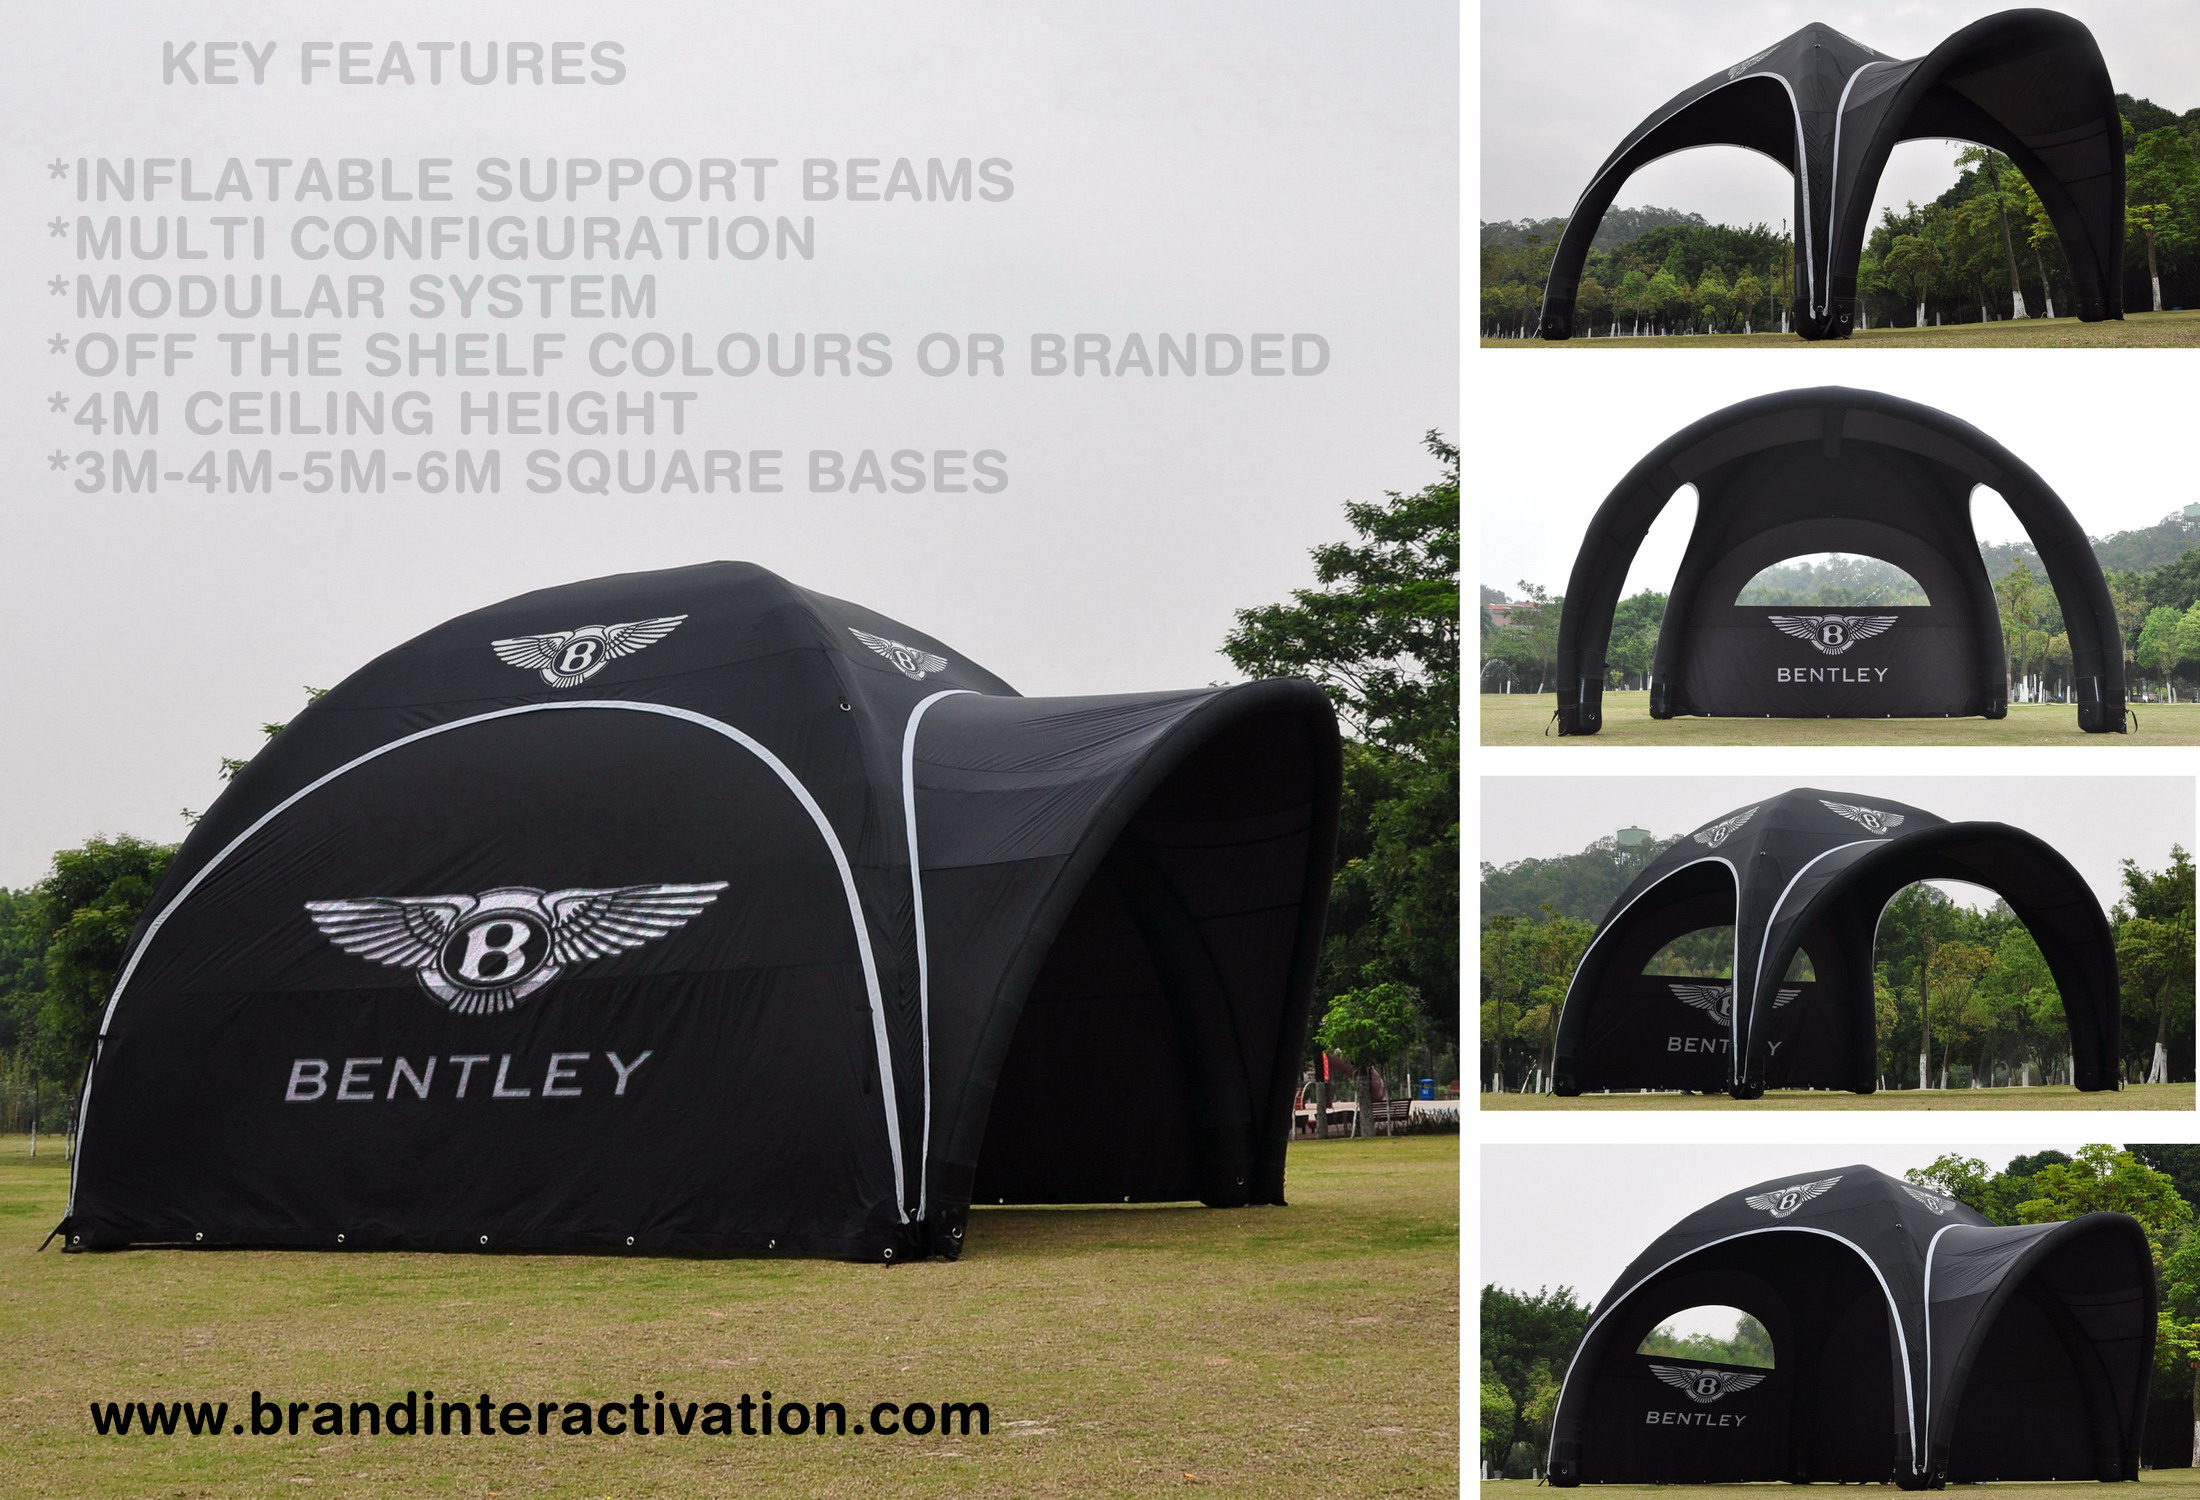 Modular Tent System Bentley Temporary Inflatable Event Structure Shade Drycover